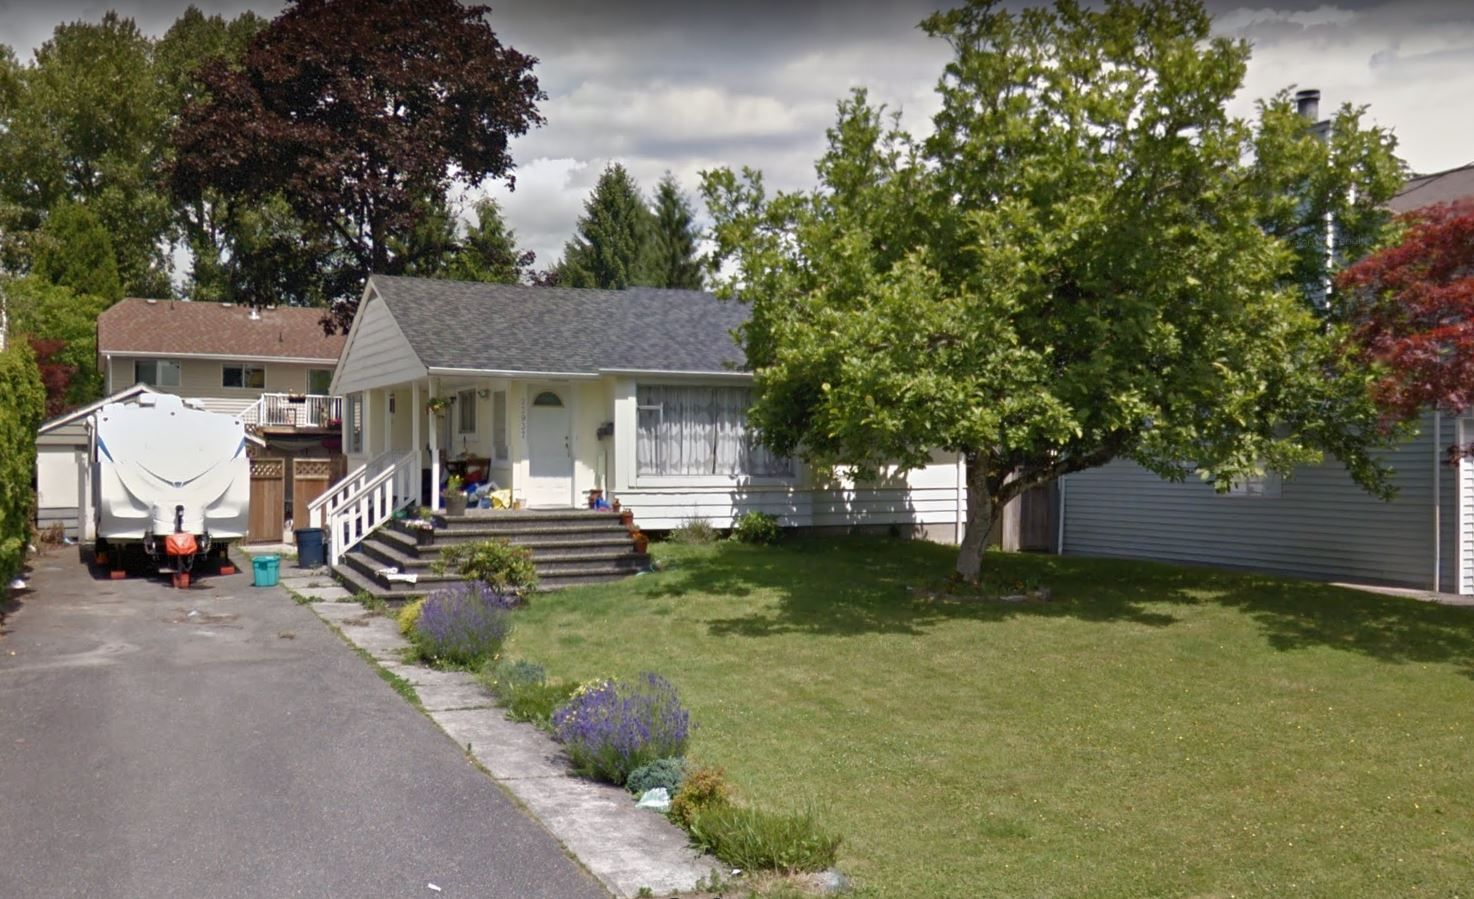 Main Photo: 22937 117th Avenue in Maple Ridge: East Central House for sale